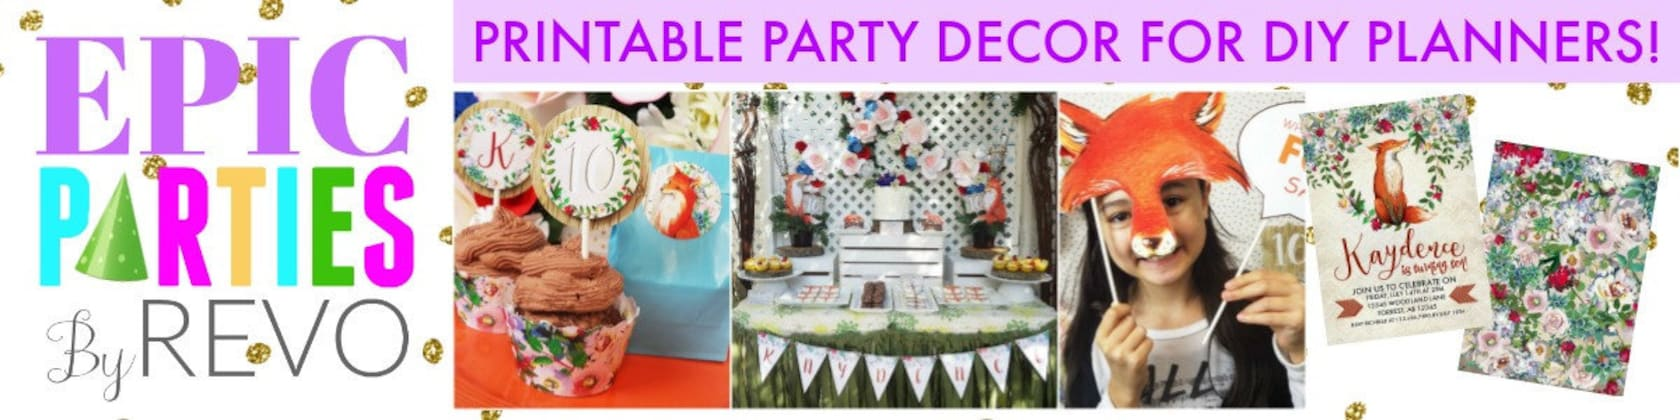 my little pony cake decorating ideas.htm printable party decor for diy planners by epicpartiesbyrevo  printable party decor for diy planners